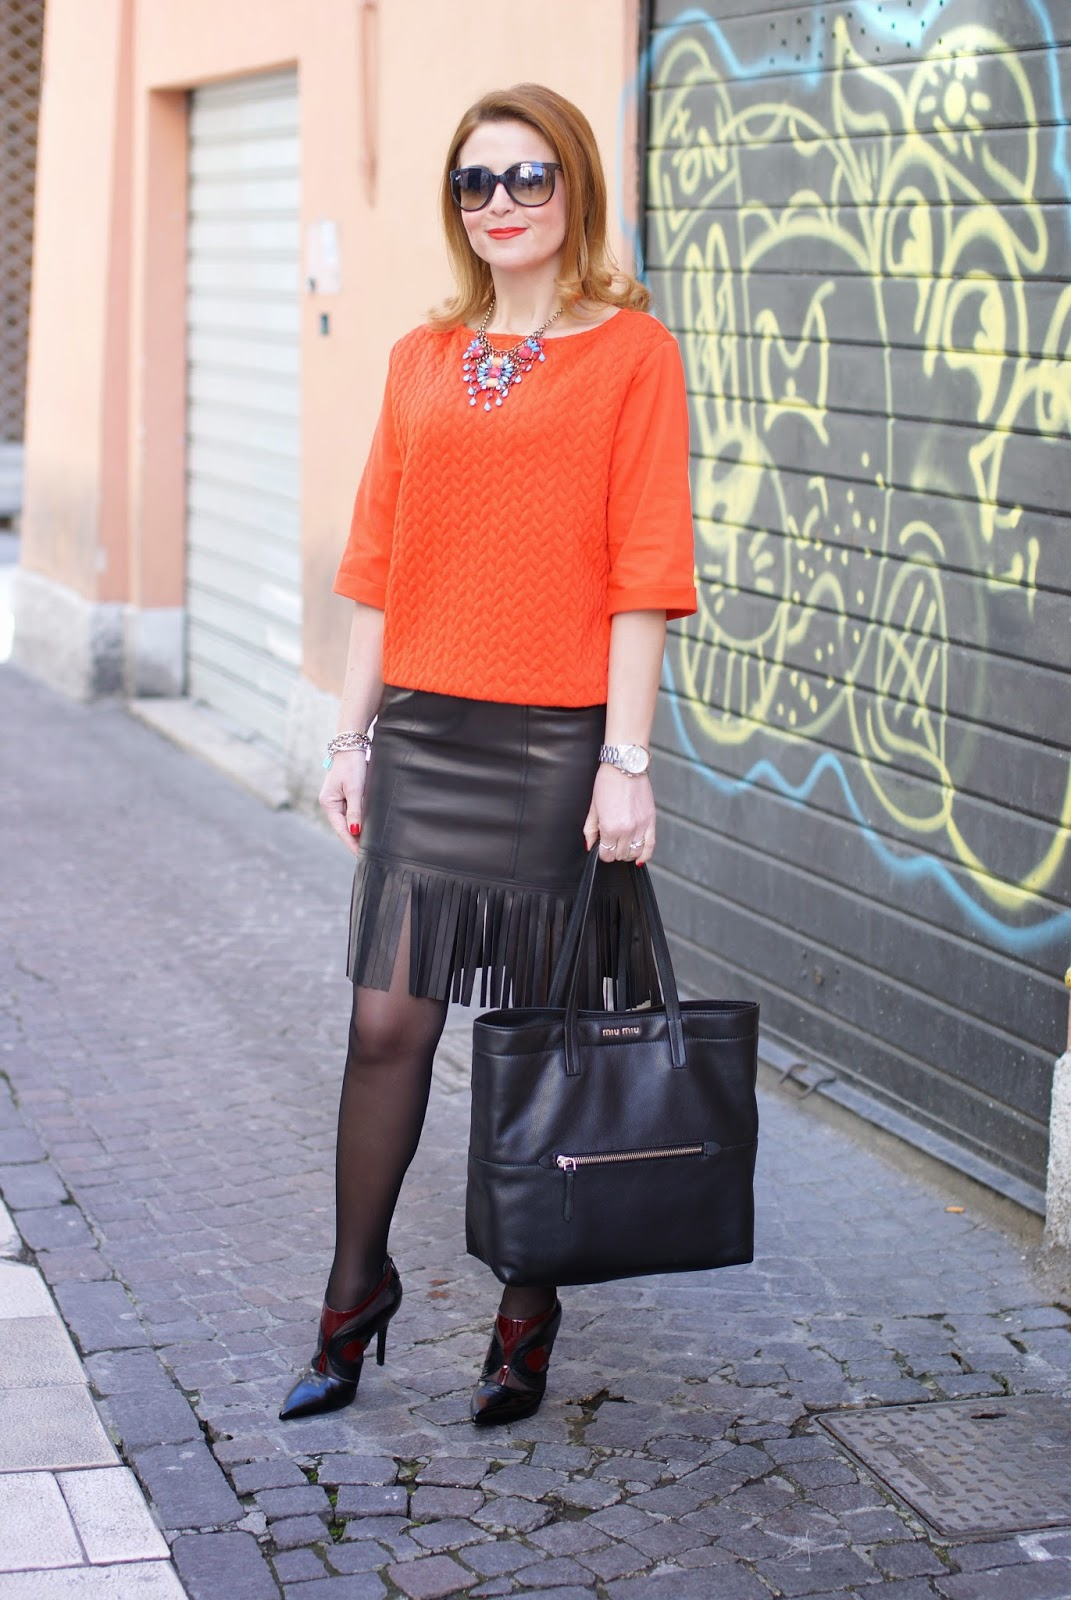 Blumarine leather fringed skirt, fringe hemline skirt, black sheer tights, Miu Miu black tote, bijou brigitte necklace, Fashion and Cookies fashion blog, fashion blogger